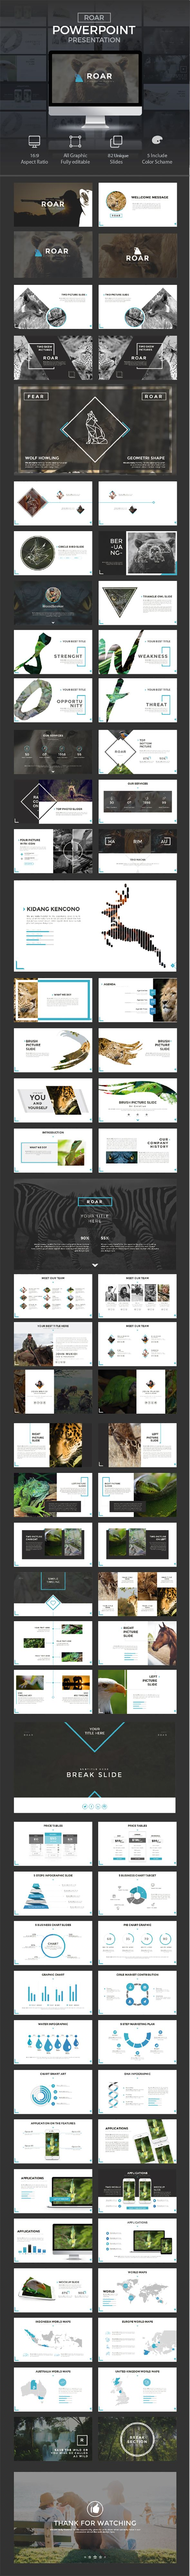 ROAR - PowerPoint Presentation Template